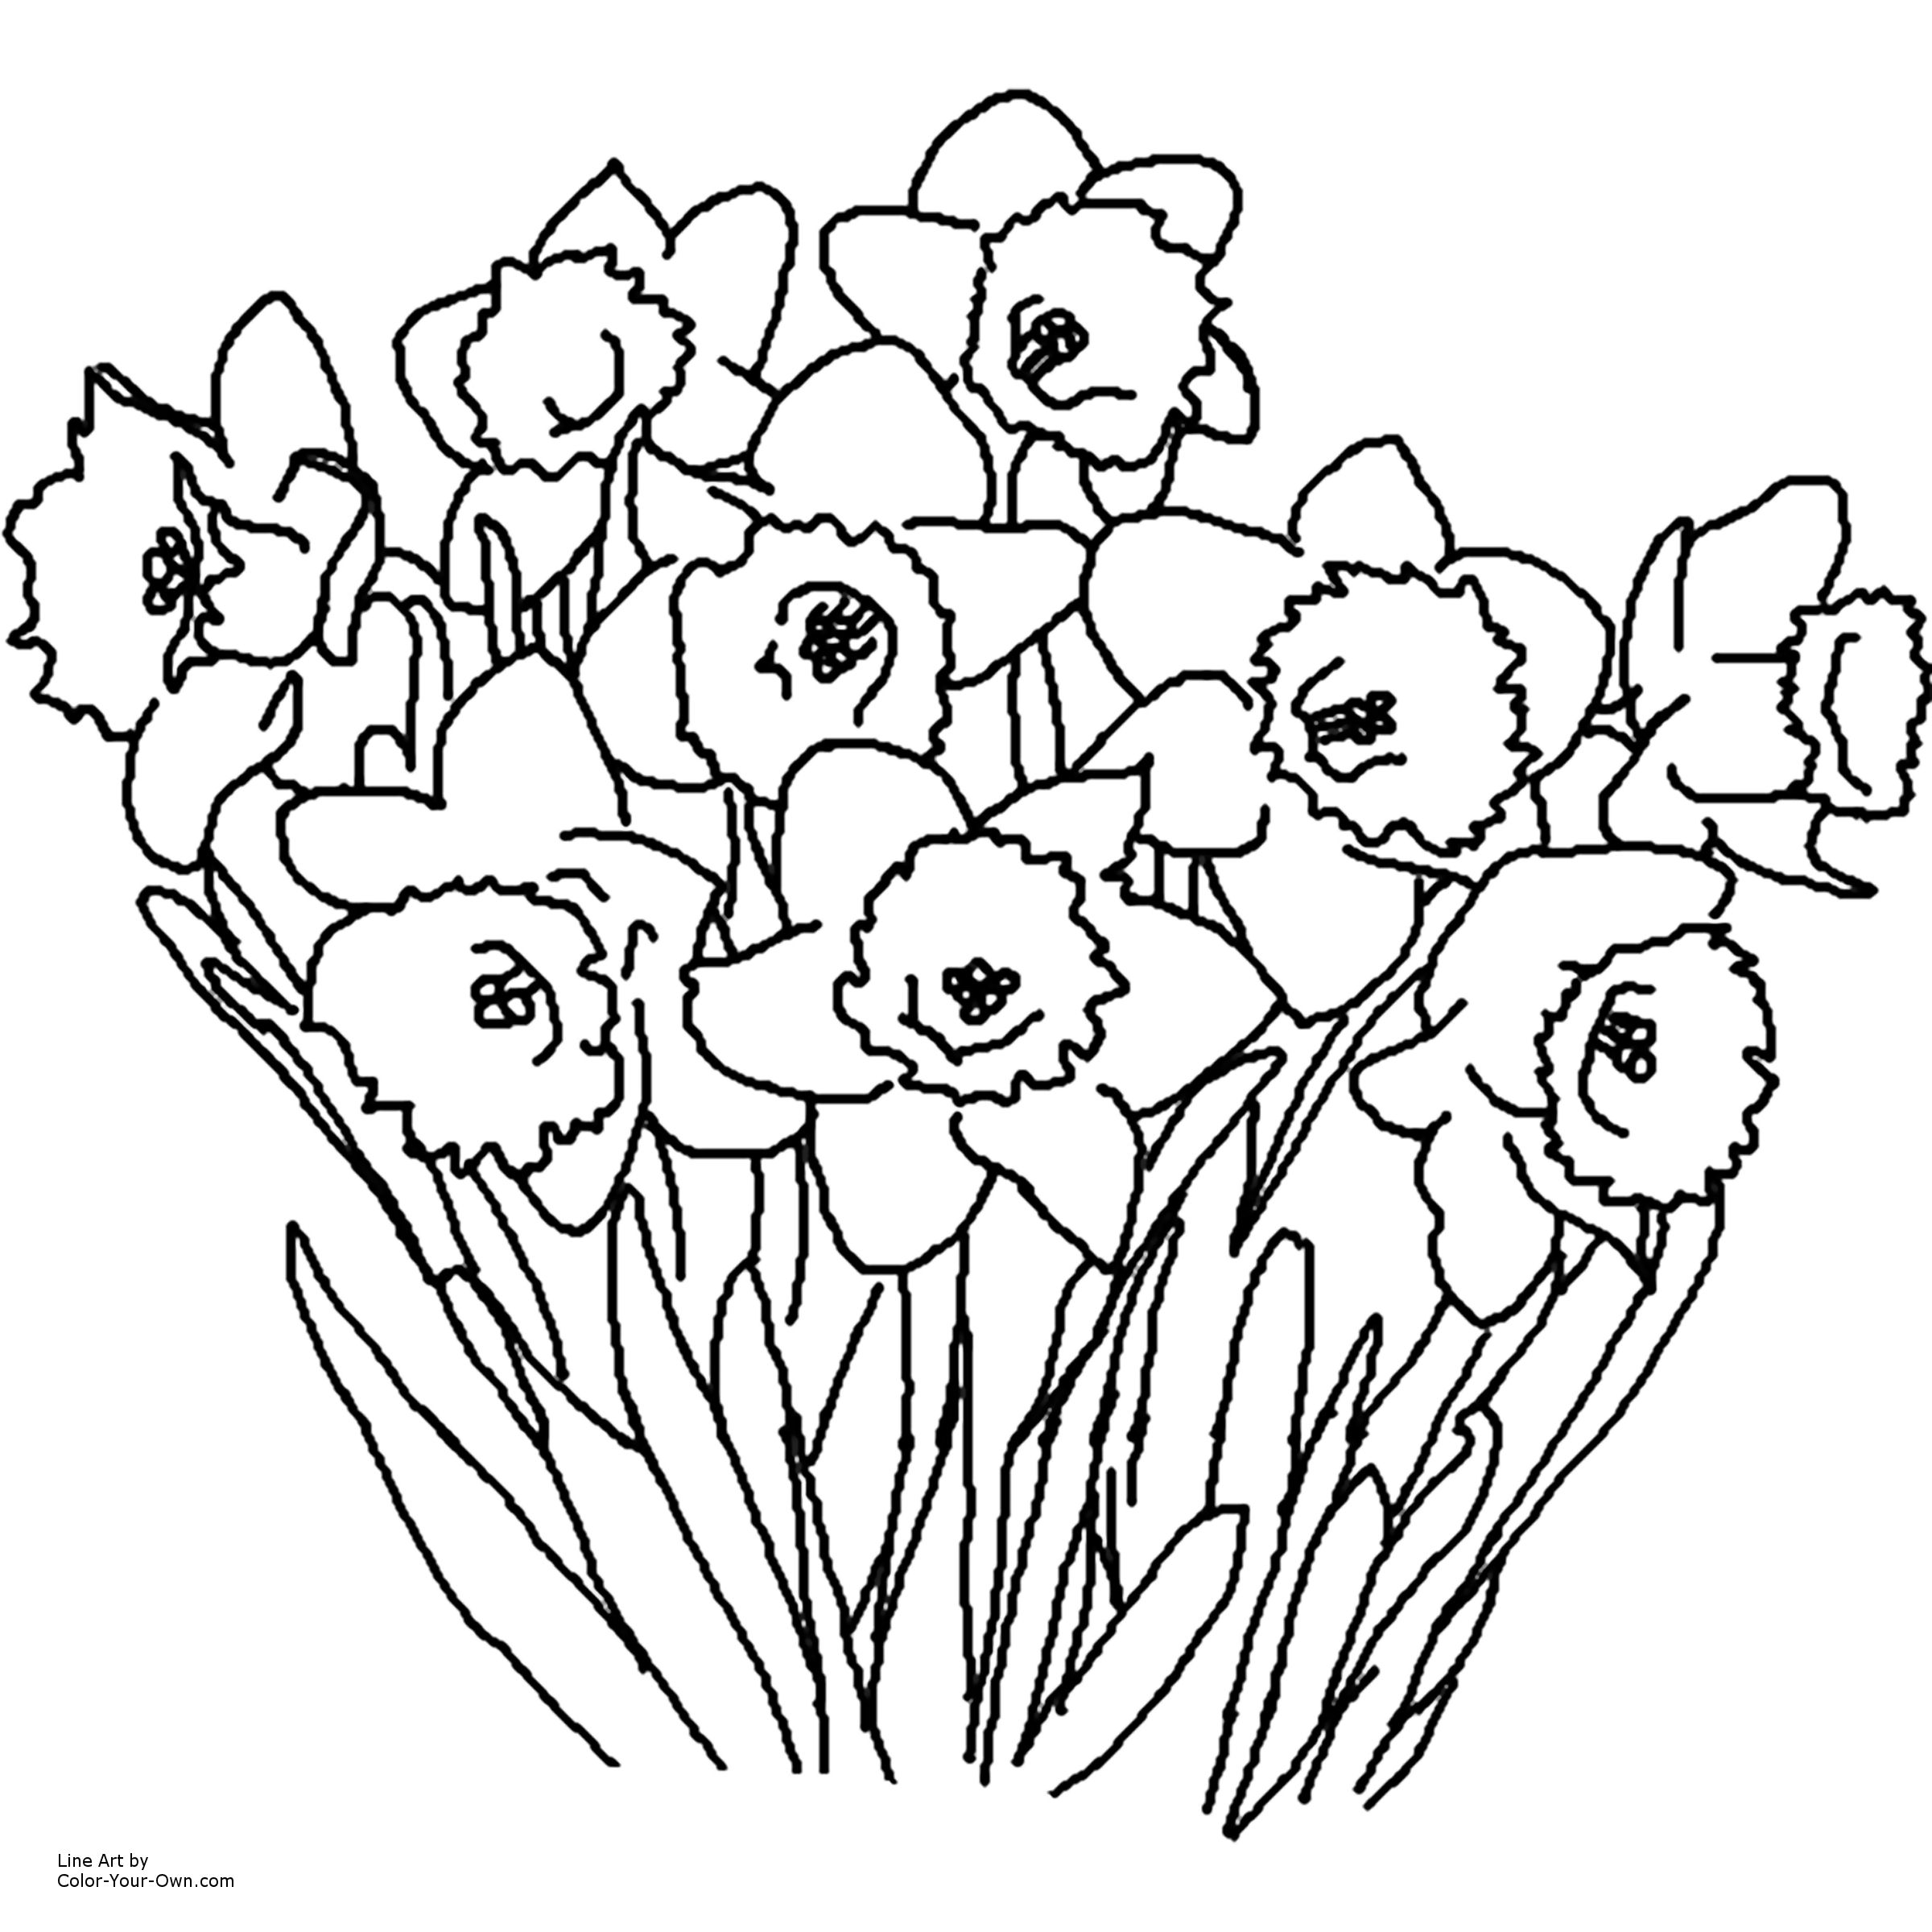 Click here for the free printable coloring page for 8 5 by 11 inch